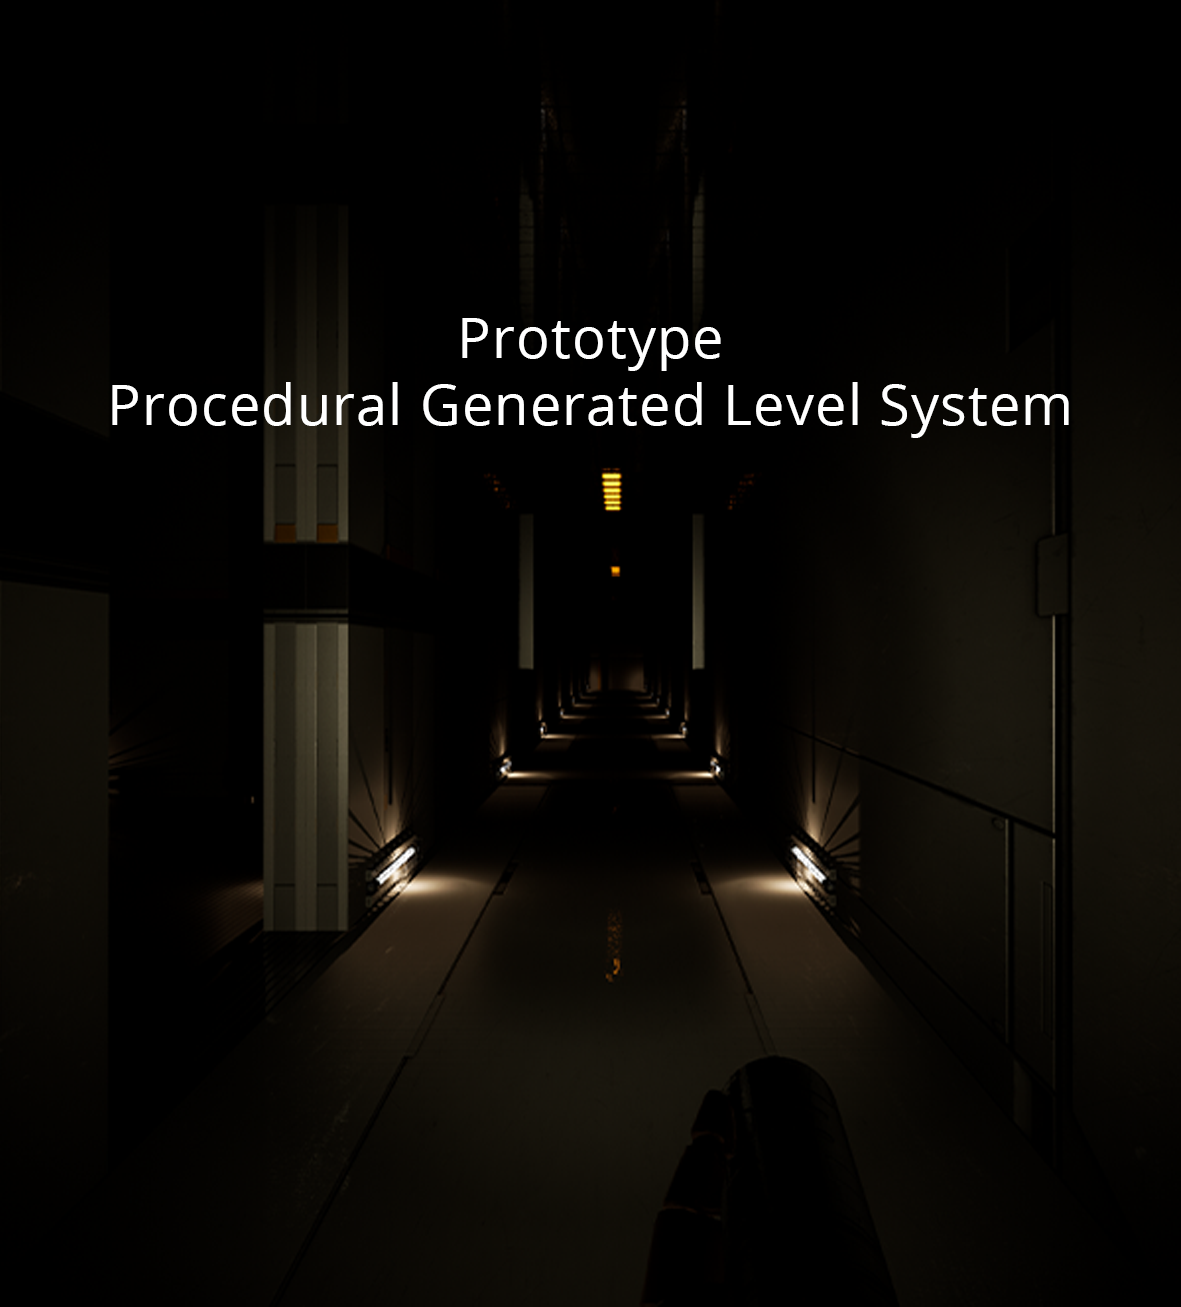 Procedural Generated Level System